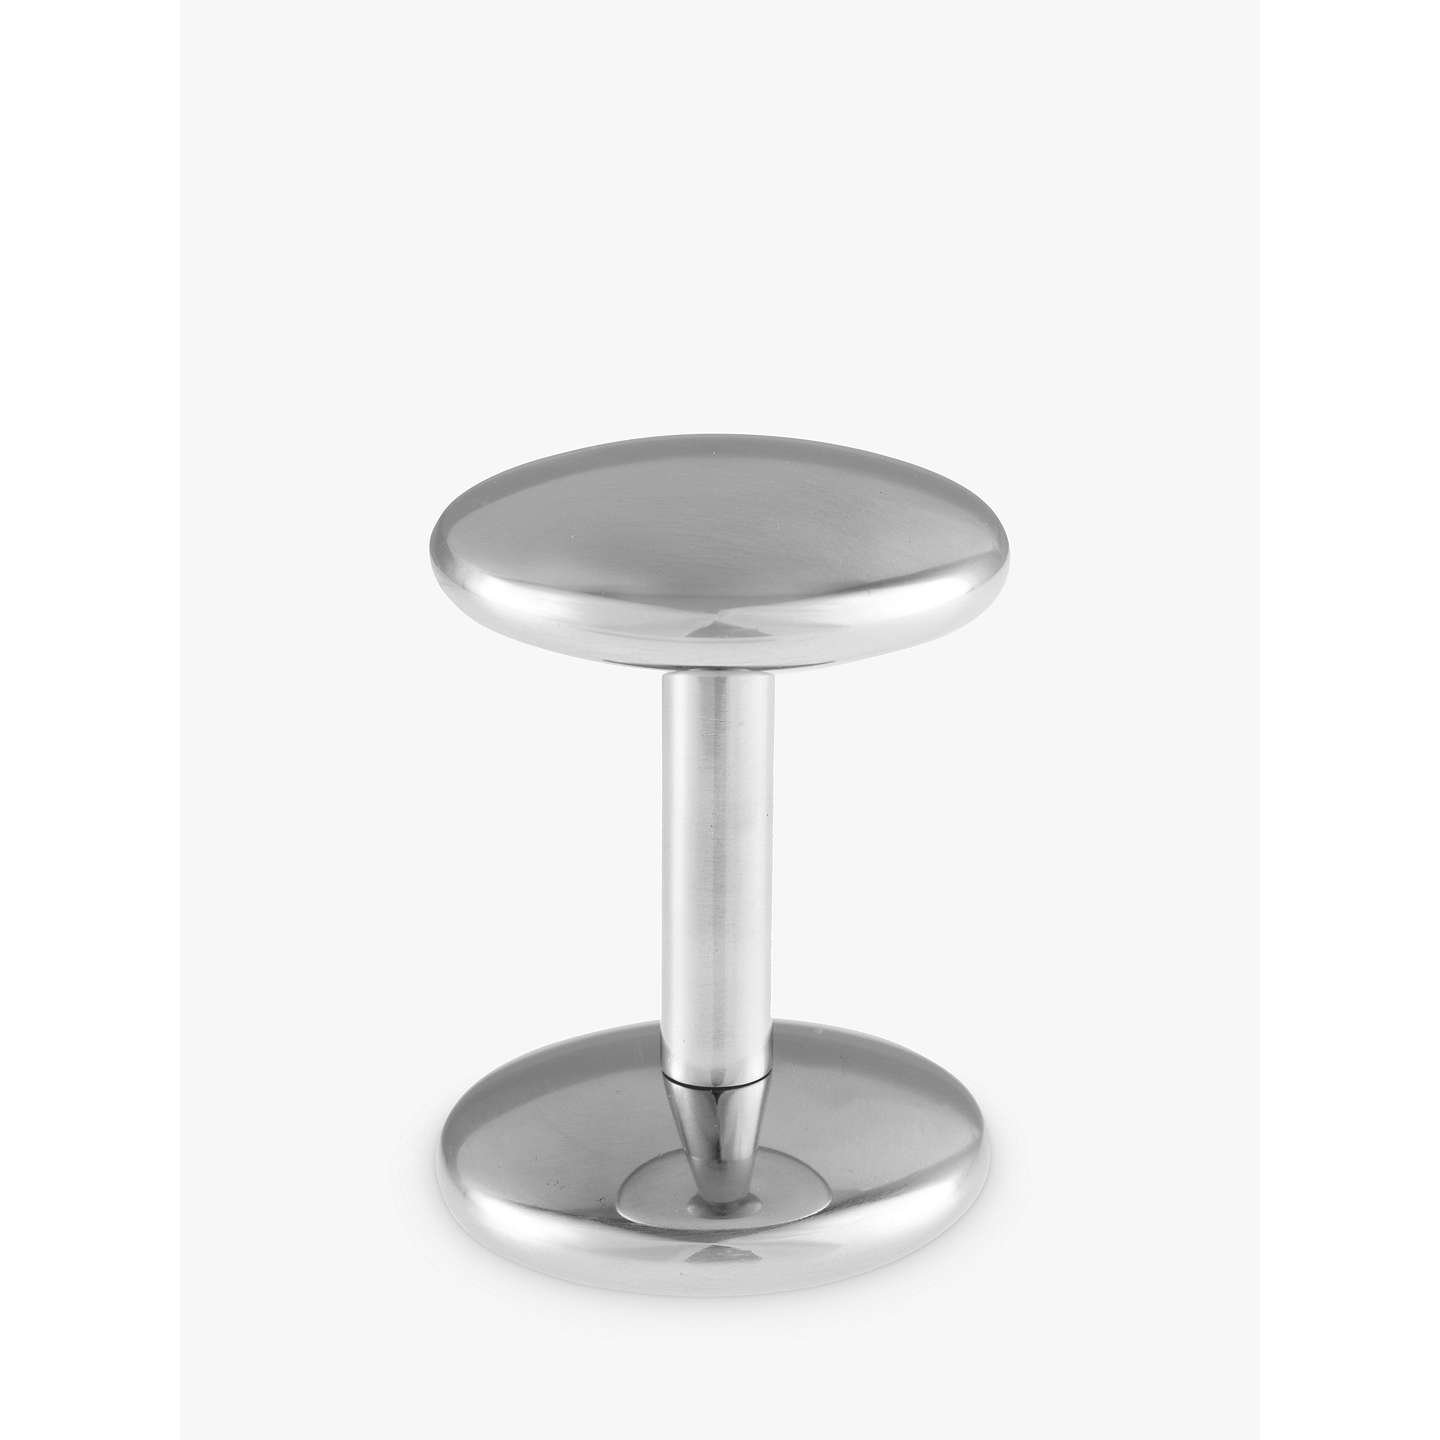 Kitchen Craft Le Xpress Stainless Steel Coffee Tamper Silver At Johnlewis Com